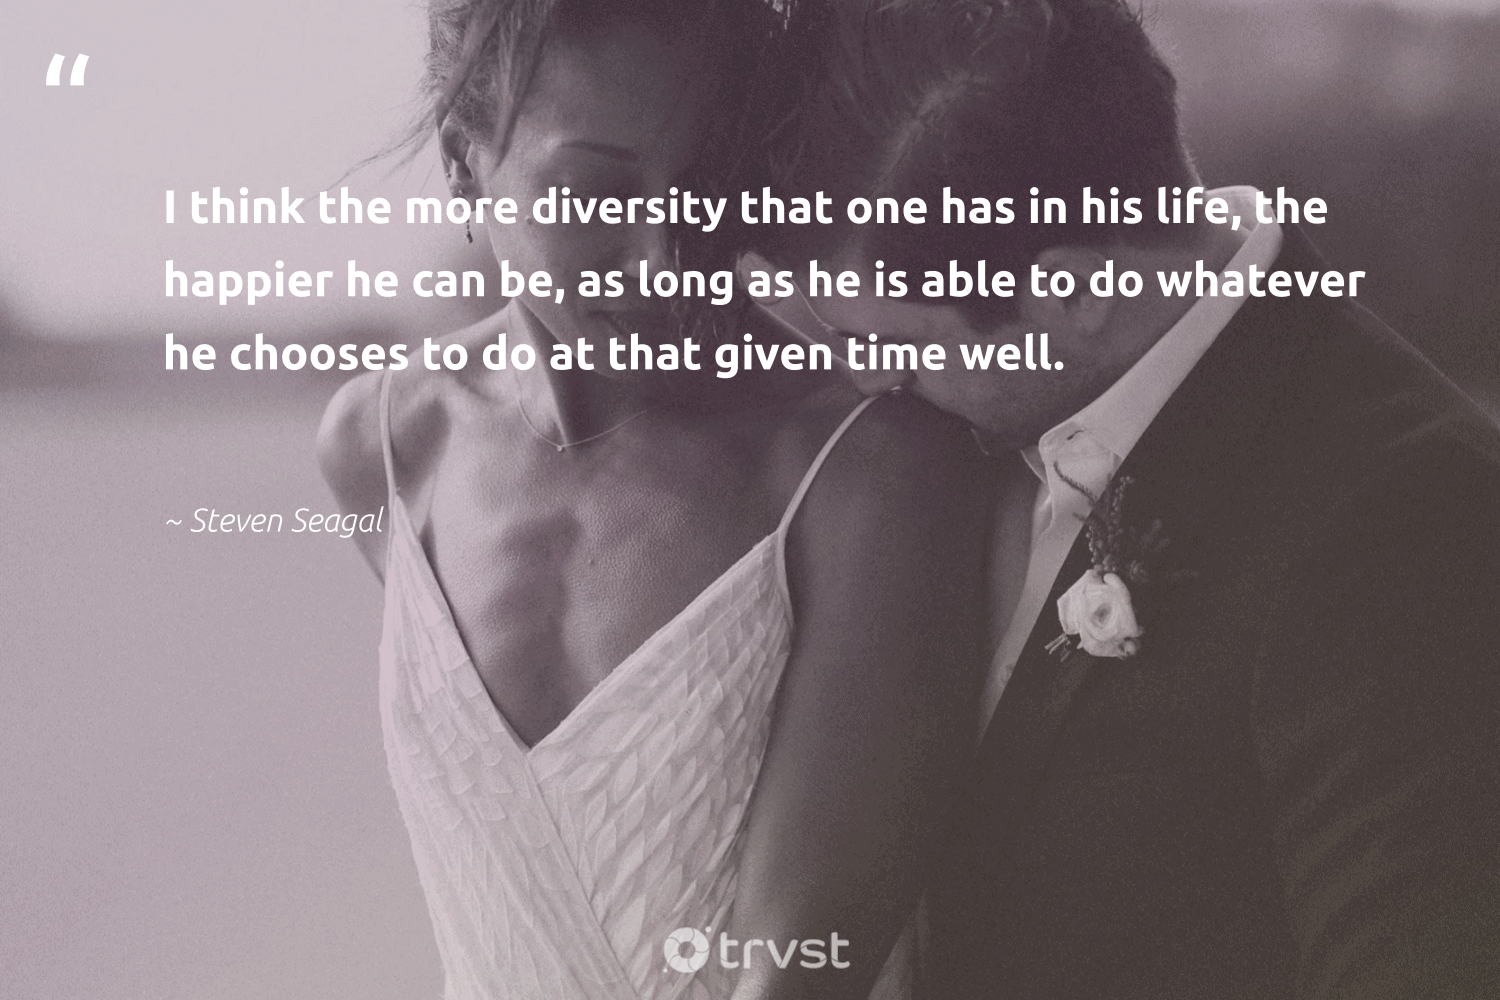 """I think the more diversity that one has in his life, the happier he can be, as long as he is able to do whatever he chooses to do at that given time well.""  - Steven Seagal #trvst #quotes #diversity #discrimination #inclusion #socialgood #makeadifference #thinkgreen #representationmatters #bethechange #socialchange #dogood"